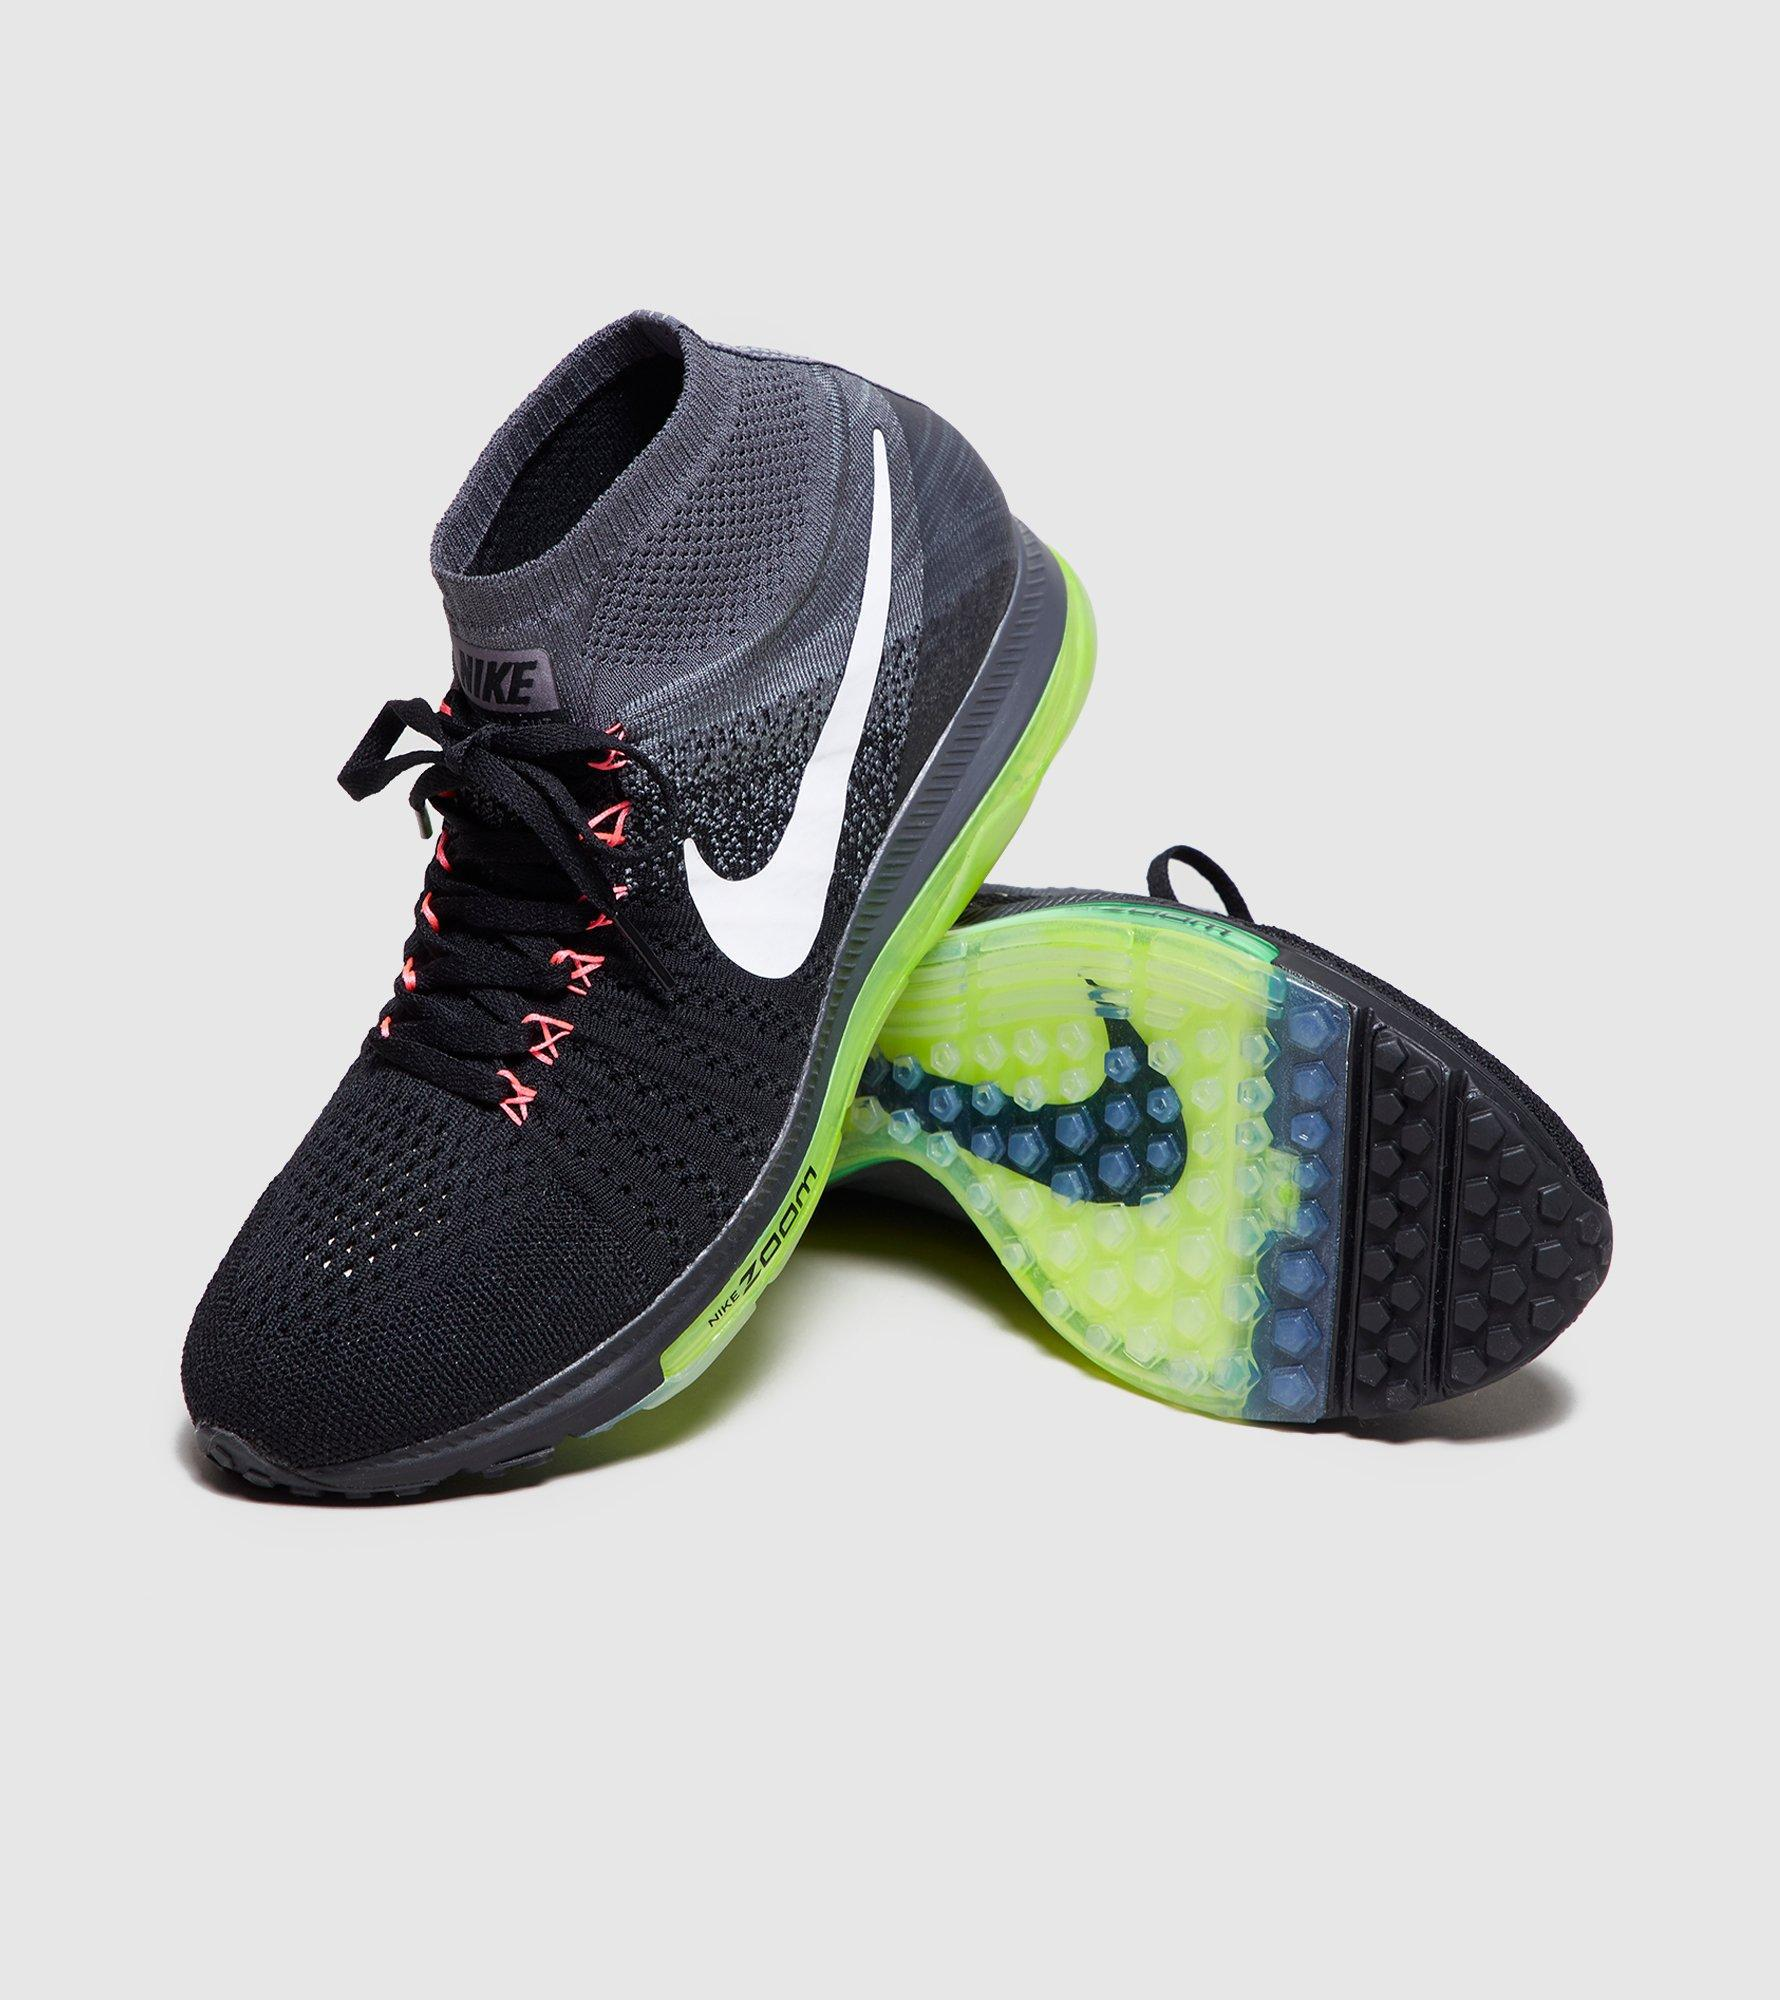 newest 1f752 0f370 ... netherlands nike black zoom all out womens lyst. view fullscreen 56b59  dcbe7